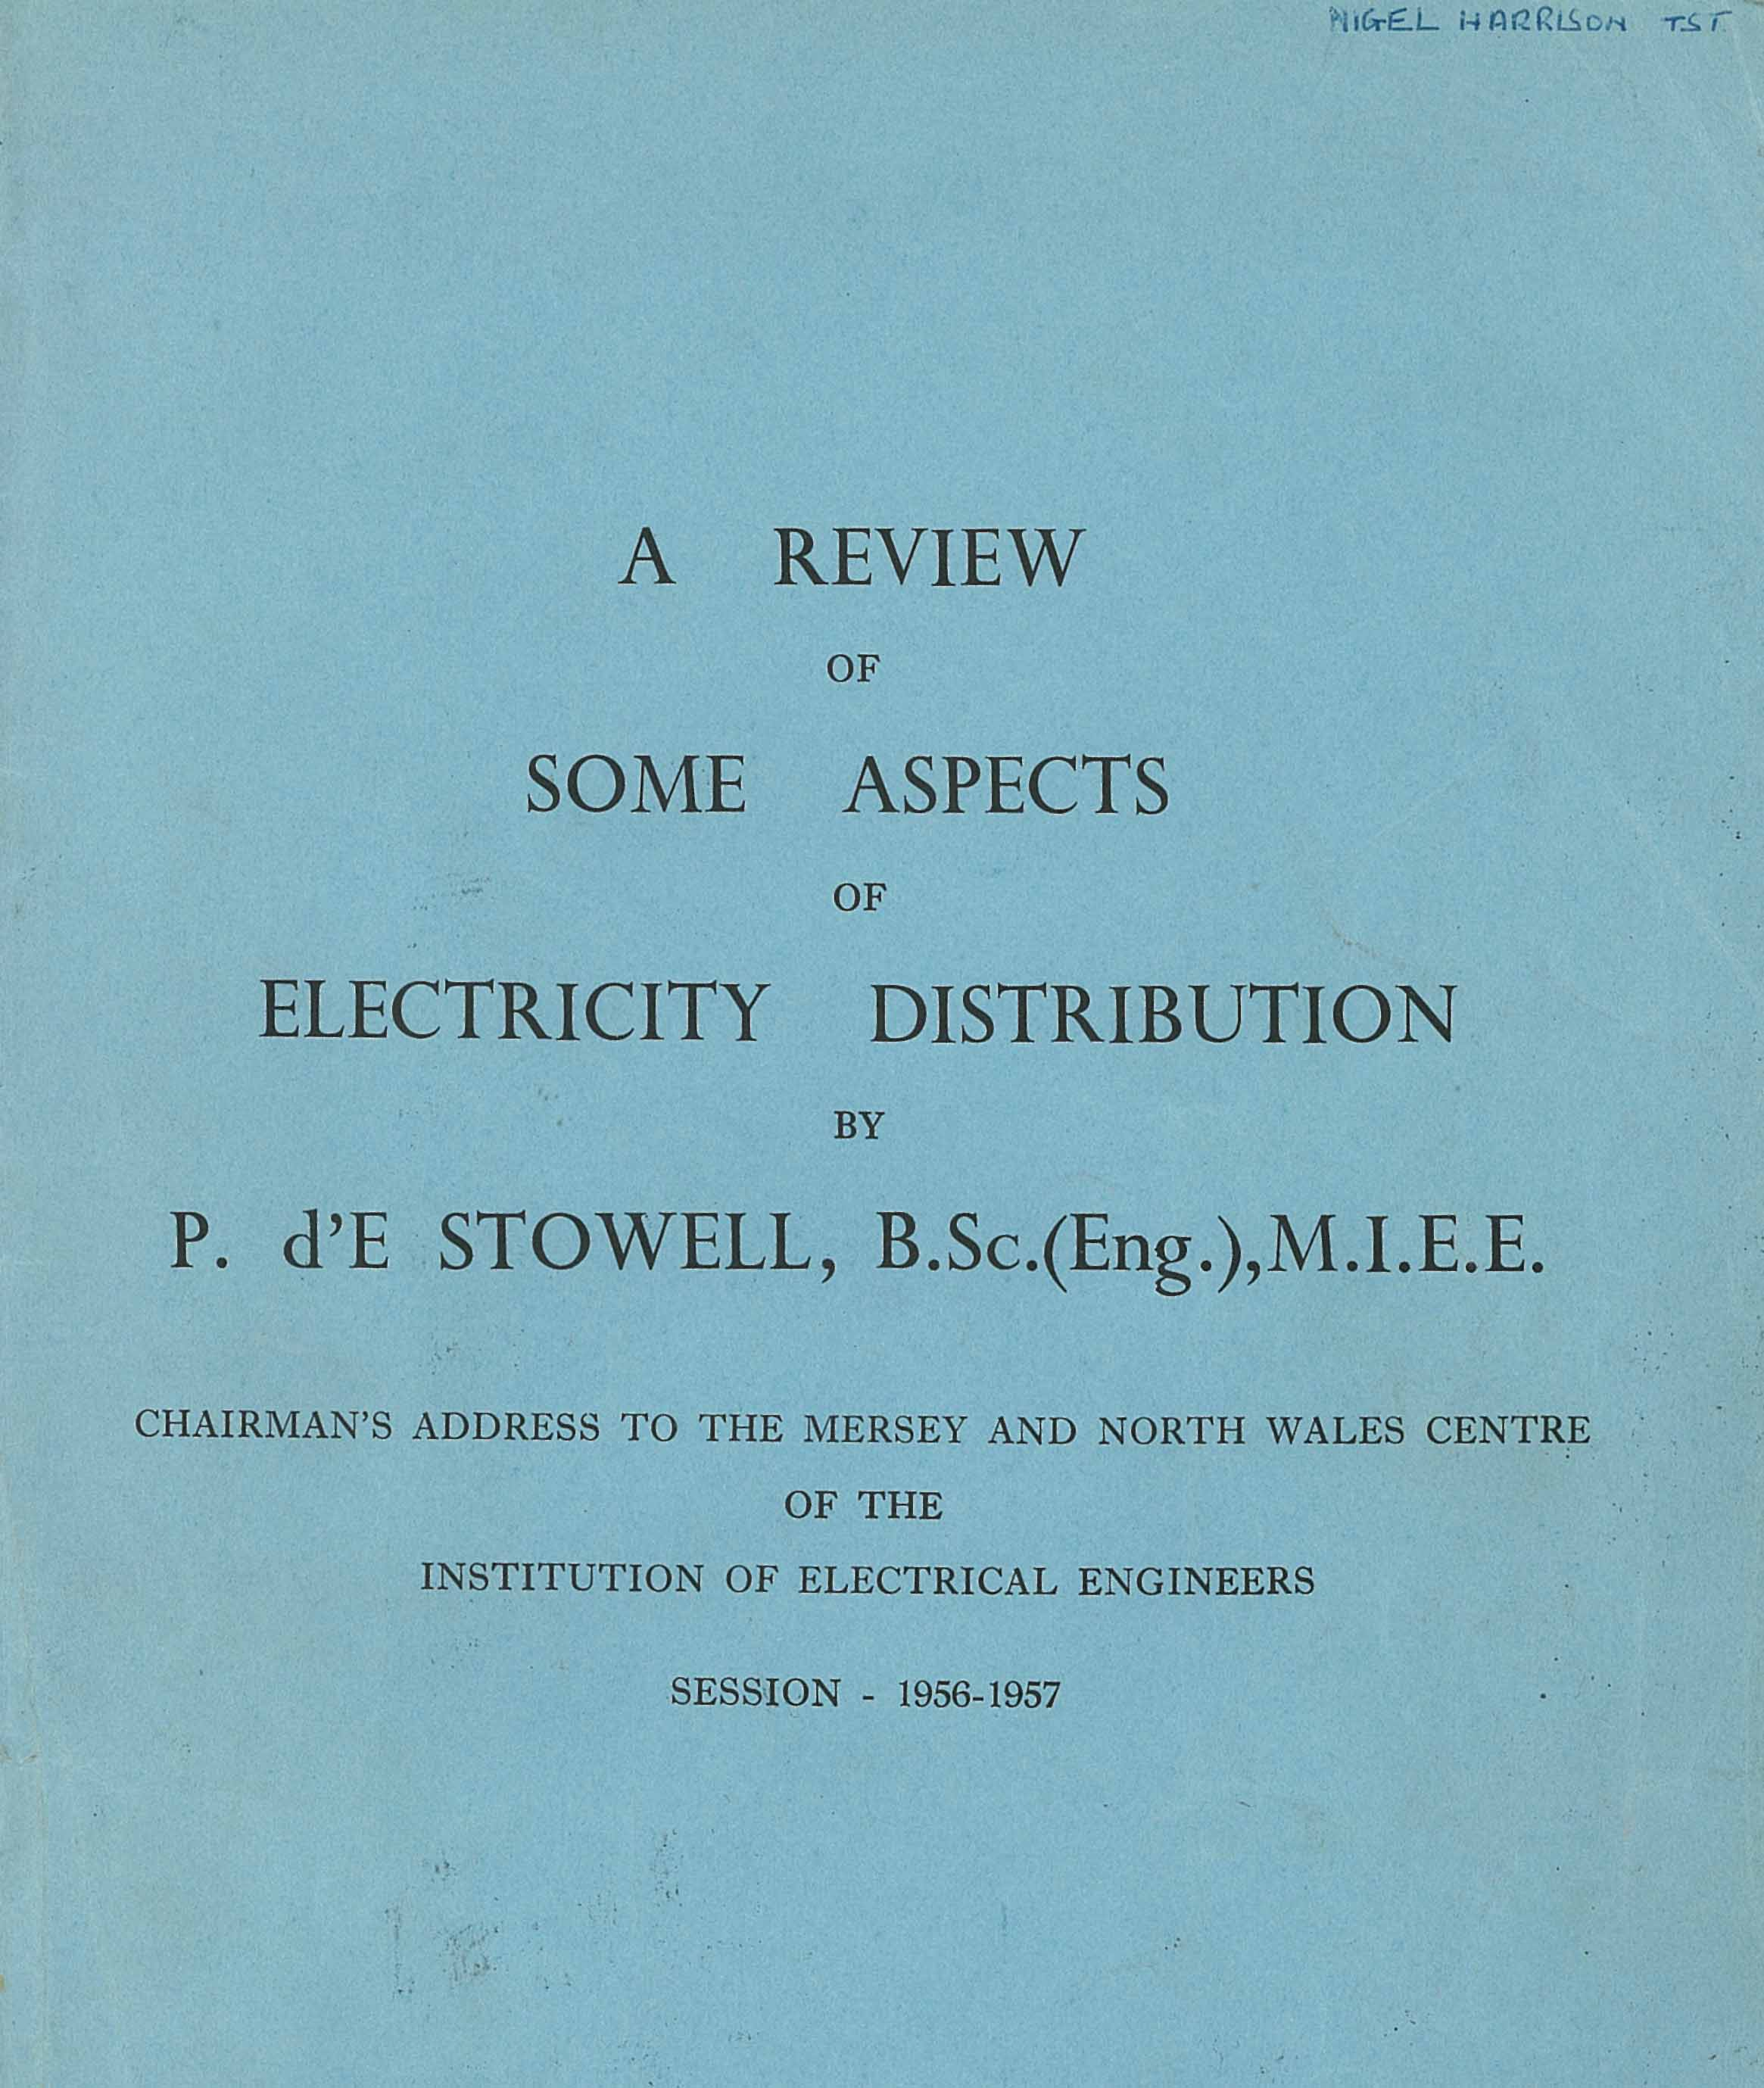 Early Electric Supply<br> by P dE Stowell 1955-56